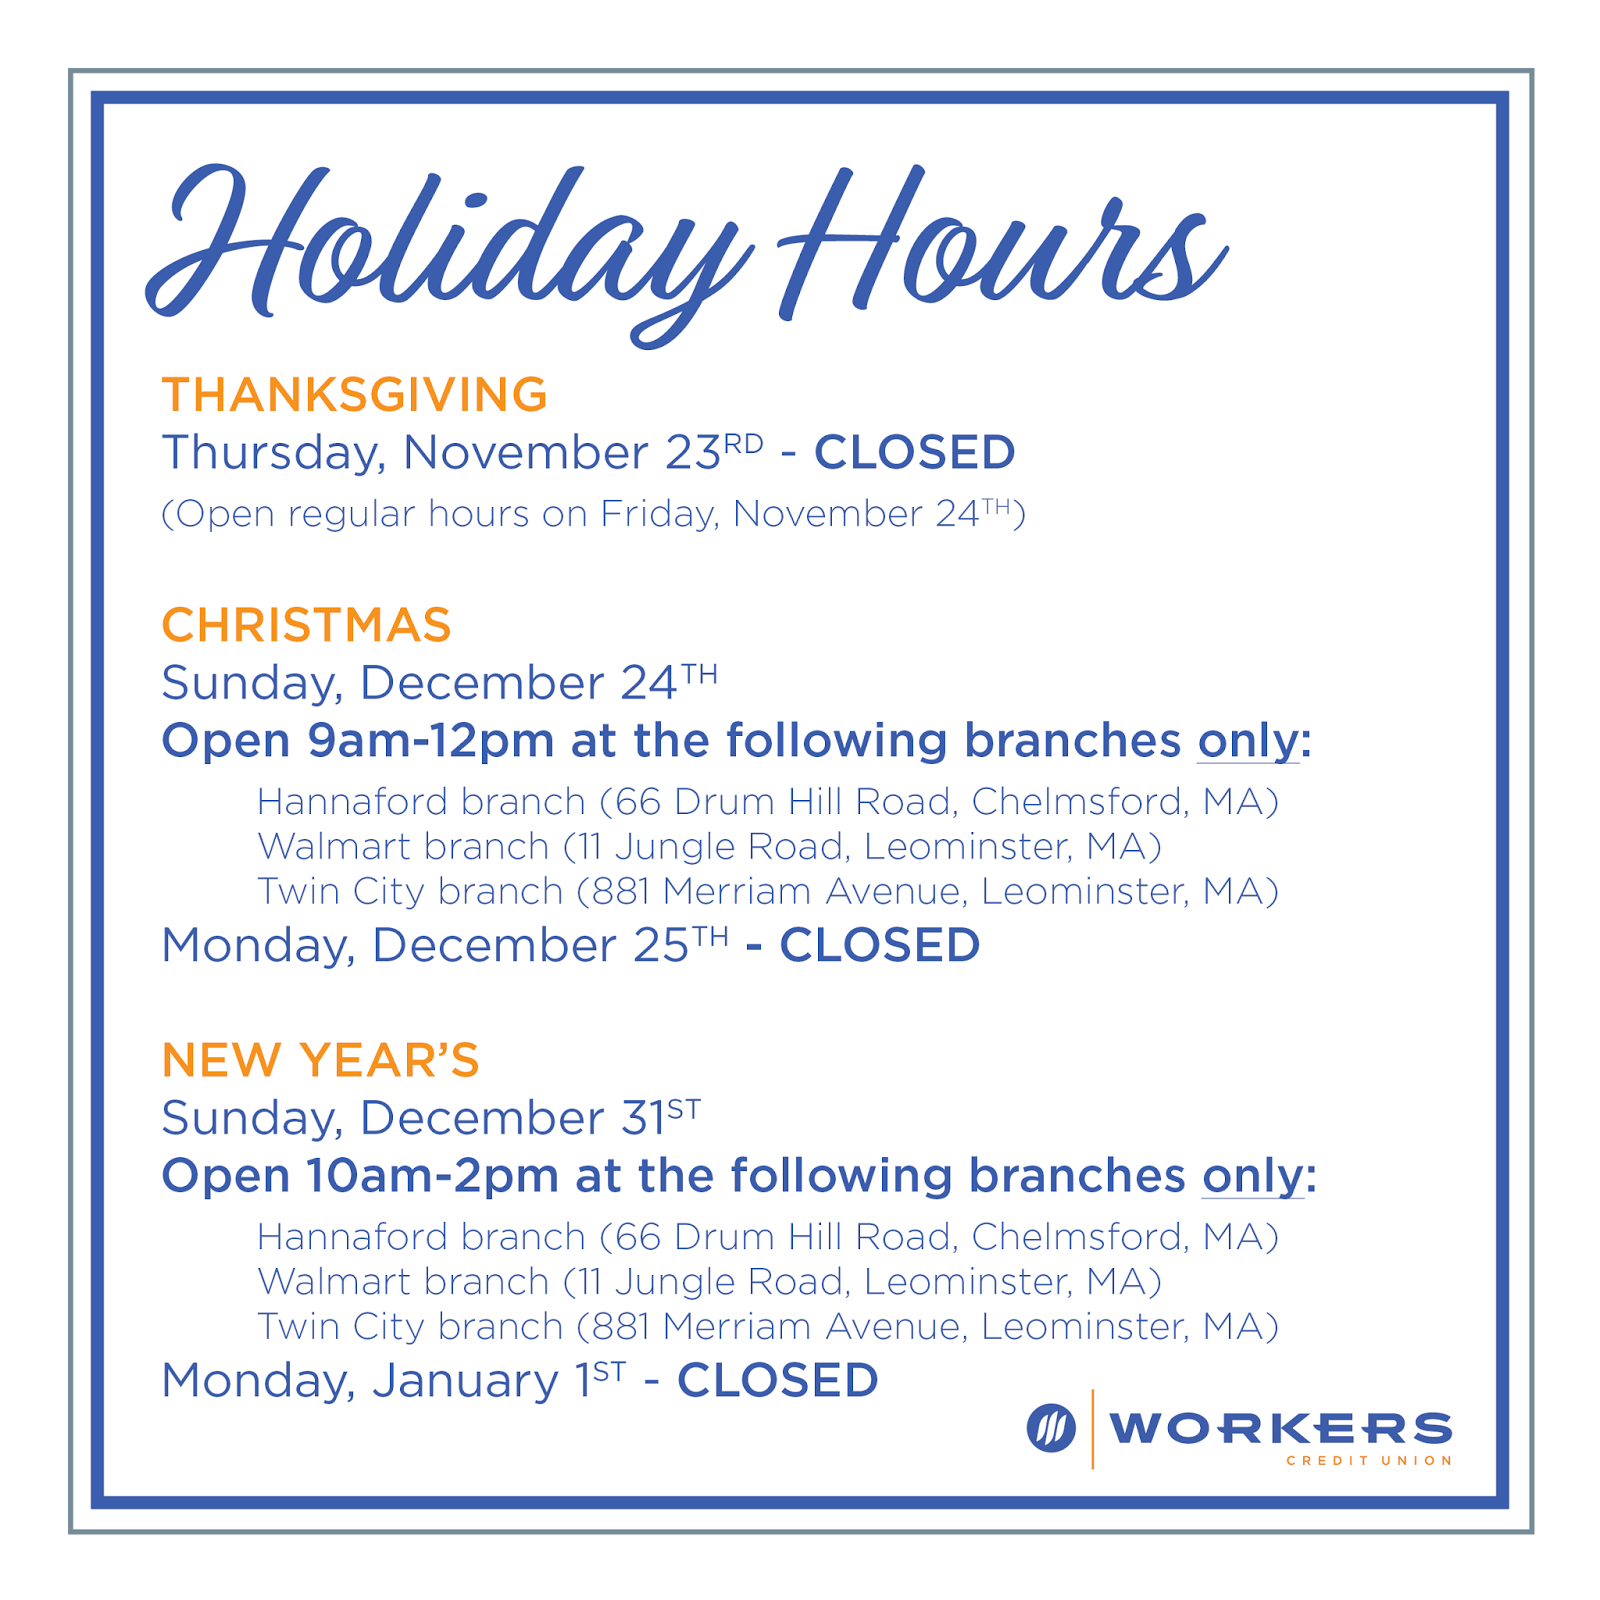 Workers Credit Union Blog: 2017 Workers Credit Union Holiday Hours